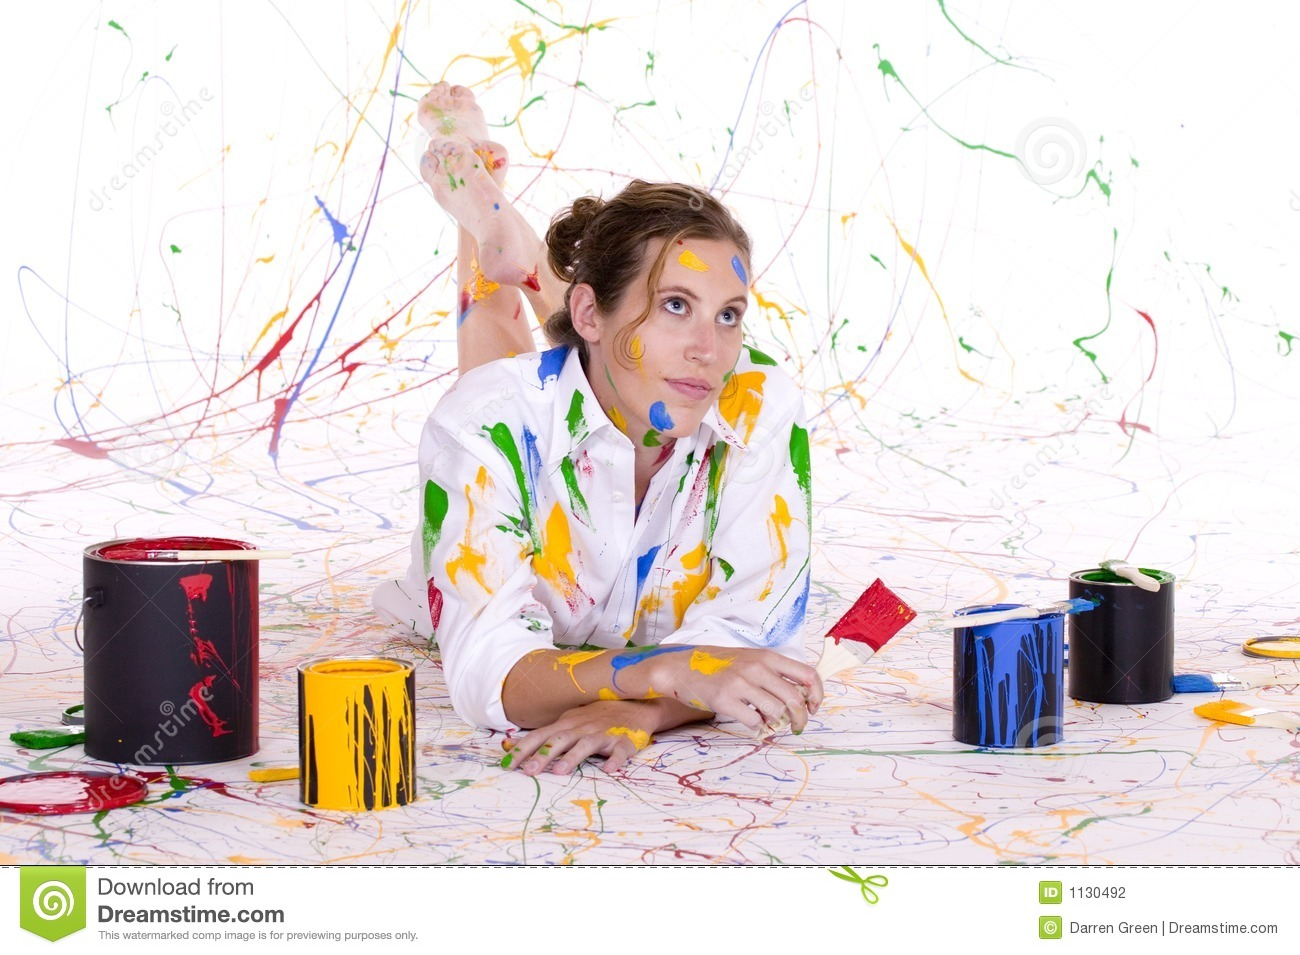 An attractive young woman covered in colorful paint